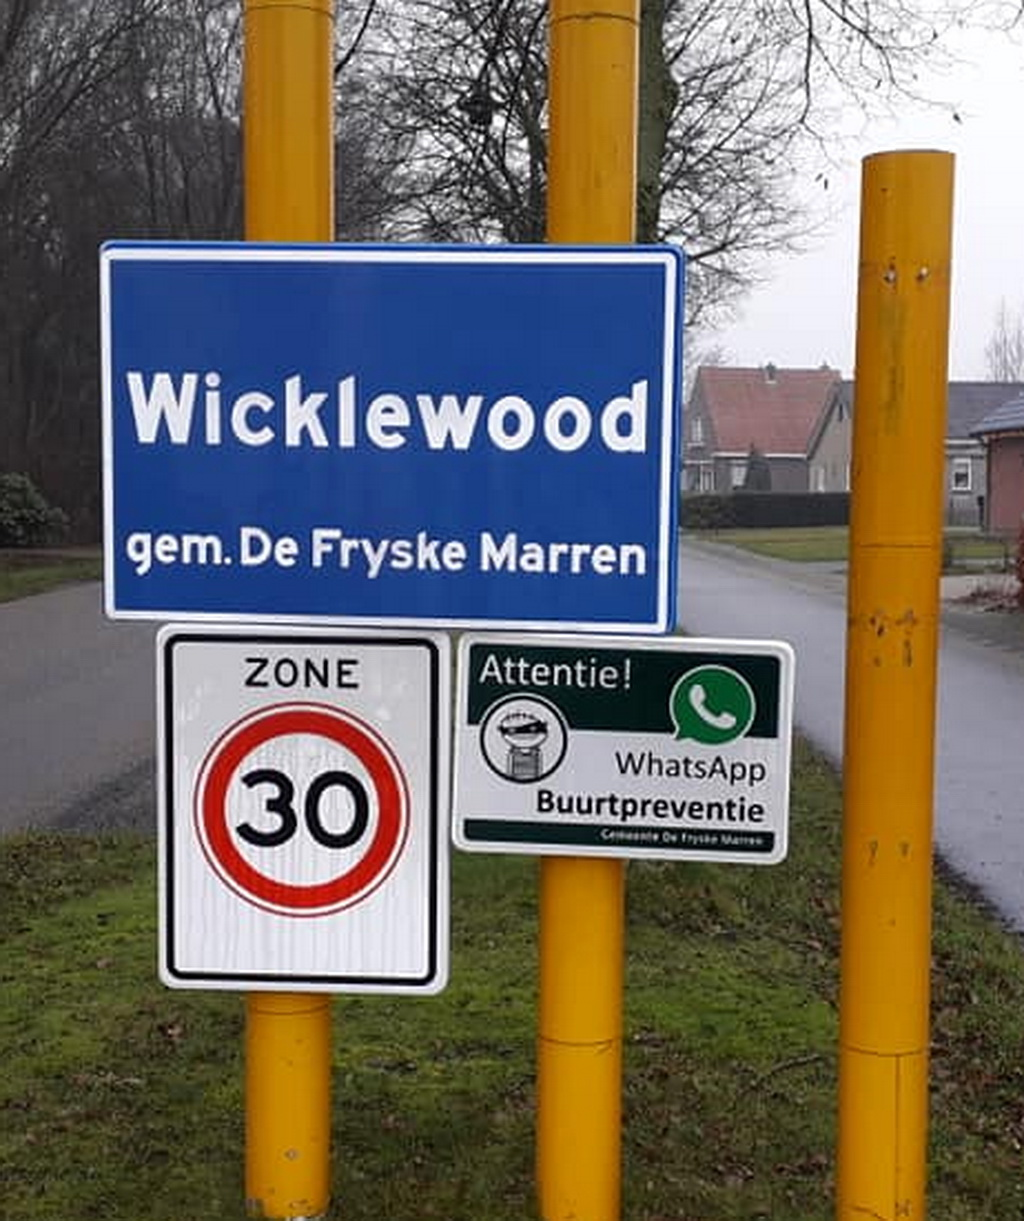 Wicklewood 02